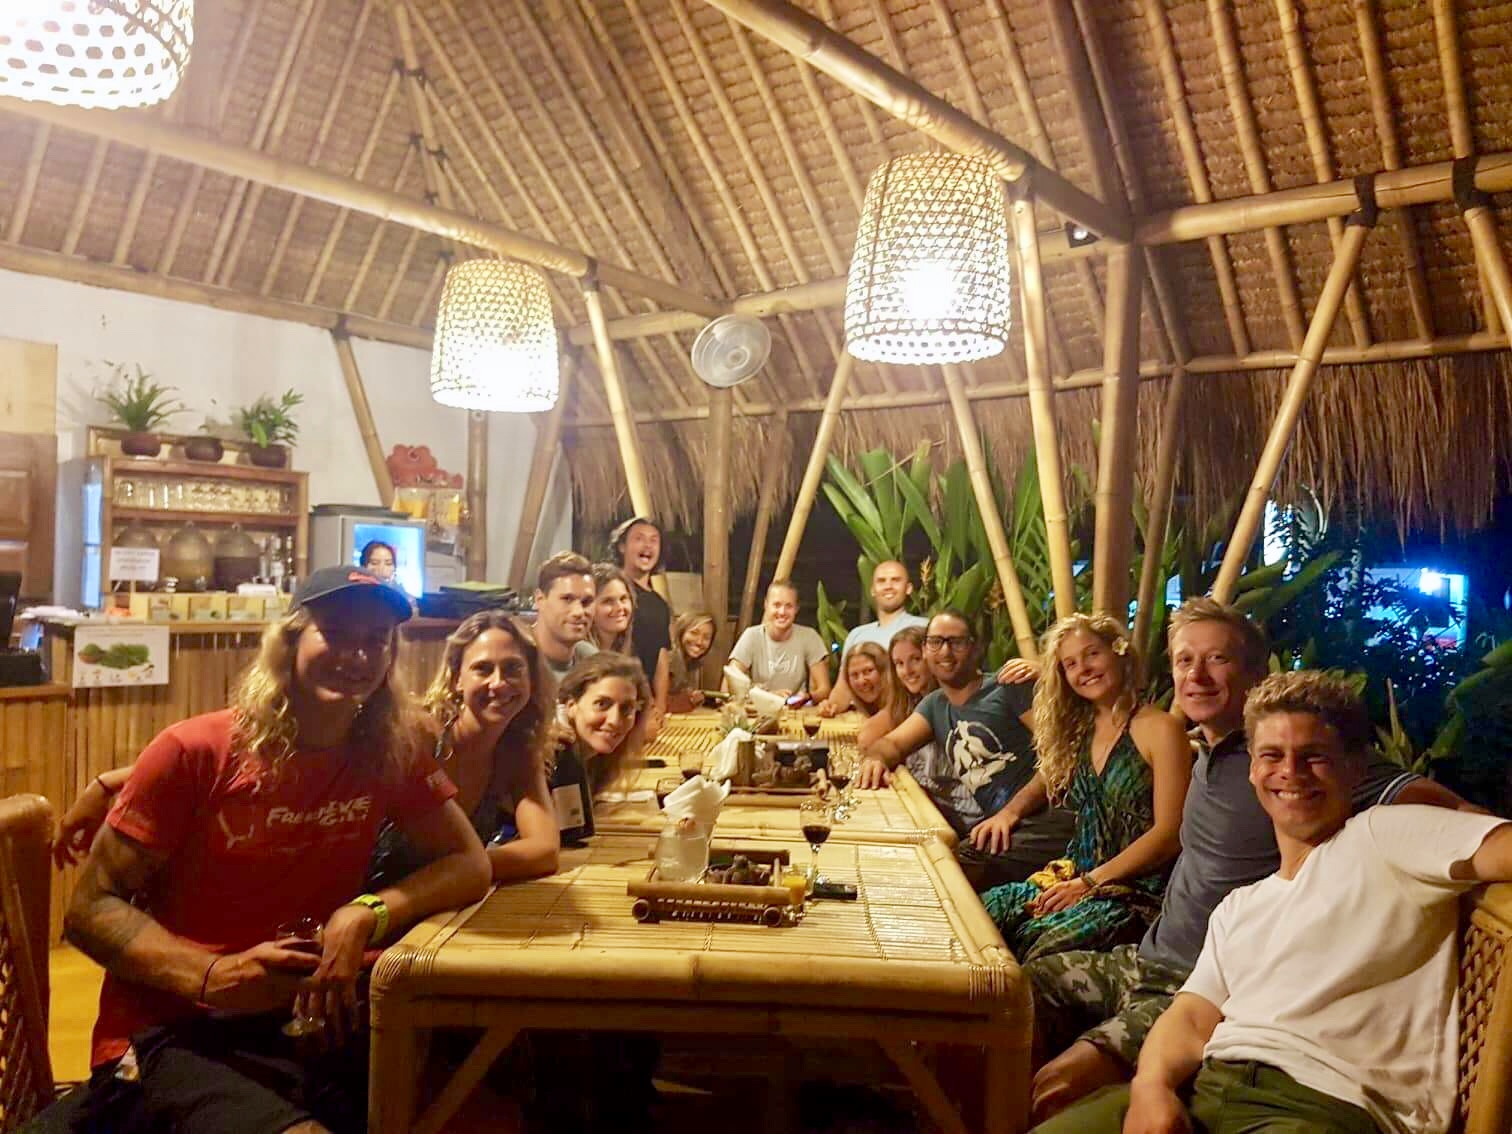 Group dinner at Galanga restaurant in Amed Bali